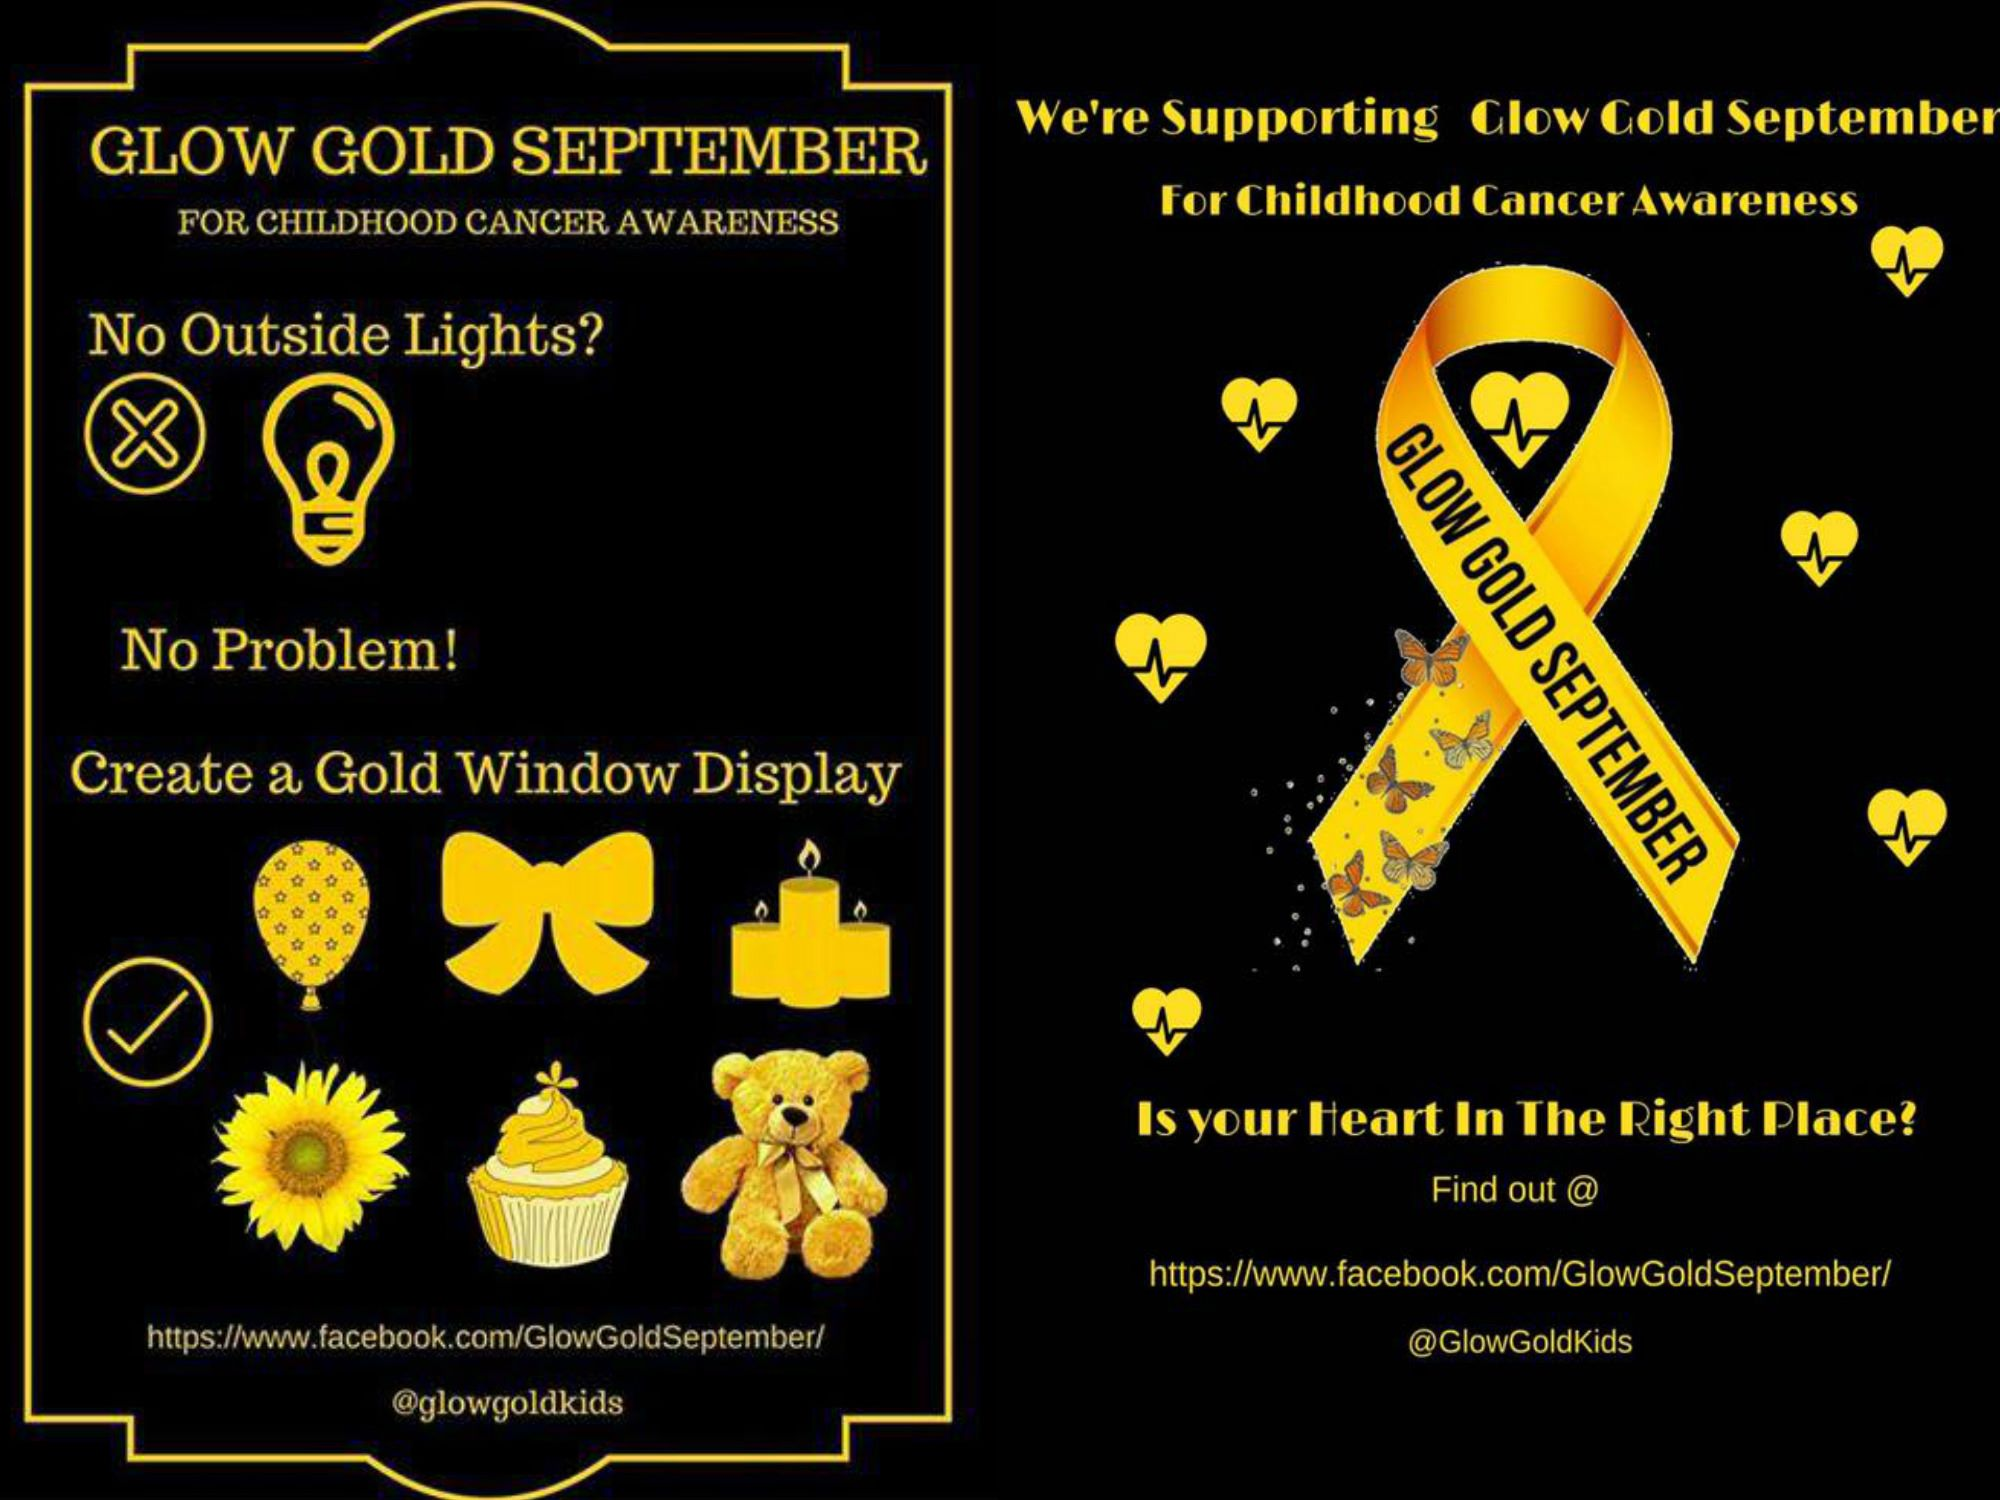 Glow Gold September Campaign